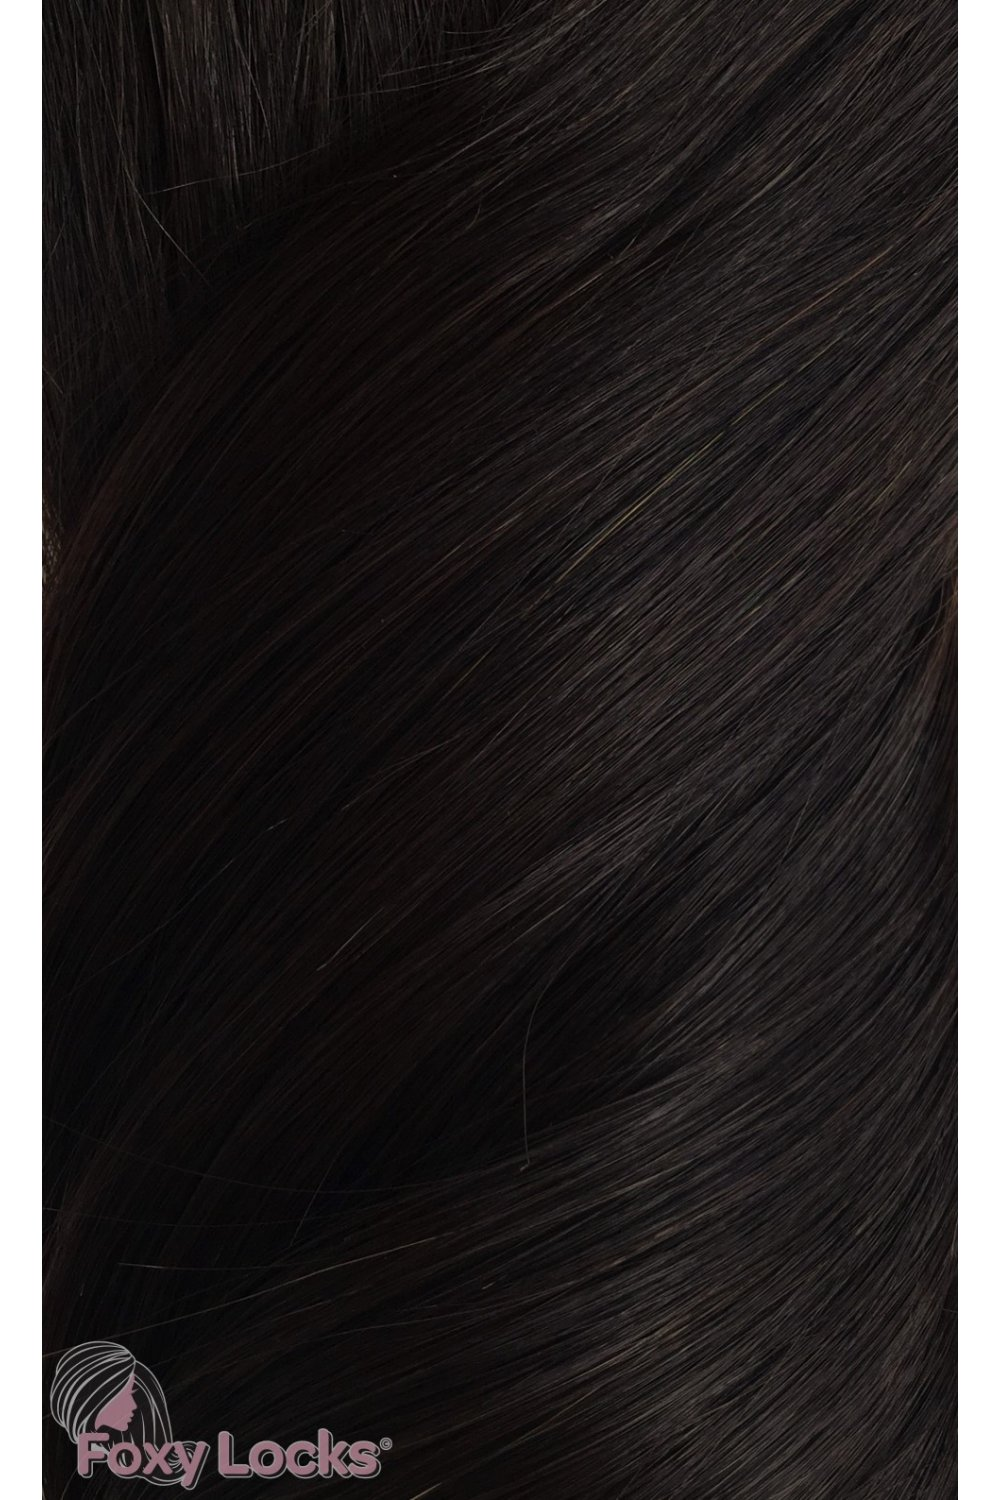 Brown Black 1b Deluxe 20 Clip In Human Hair Extensions 165g